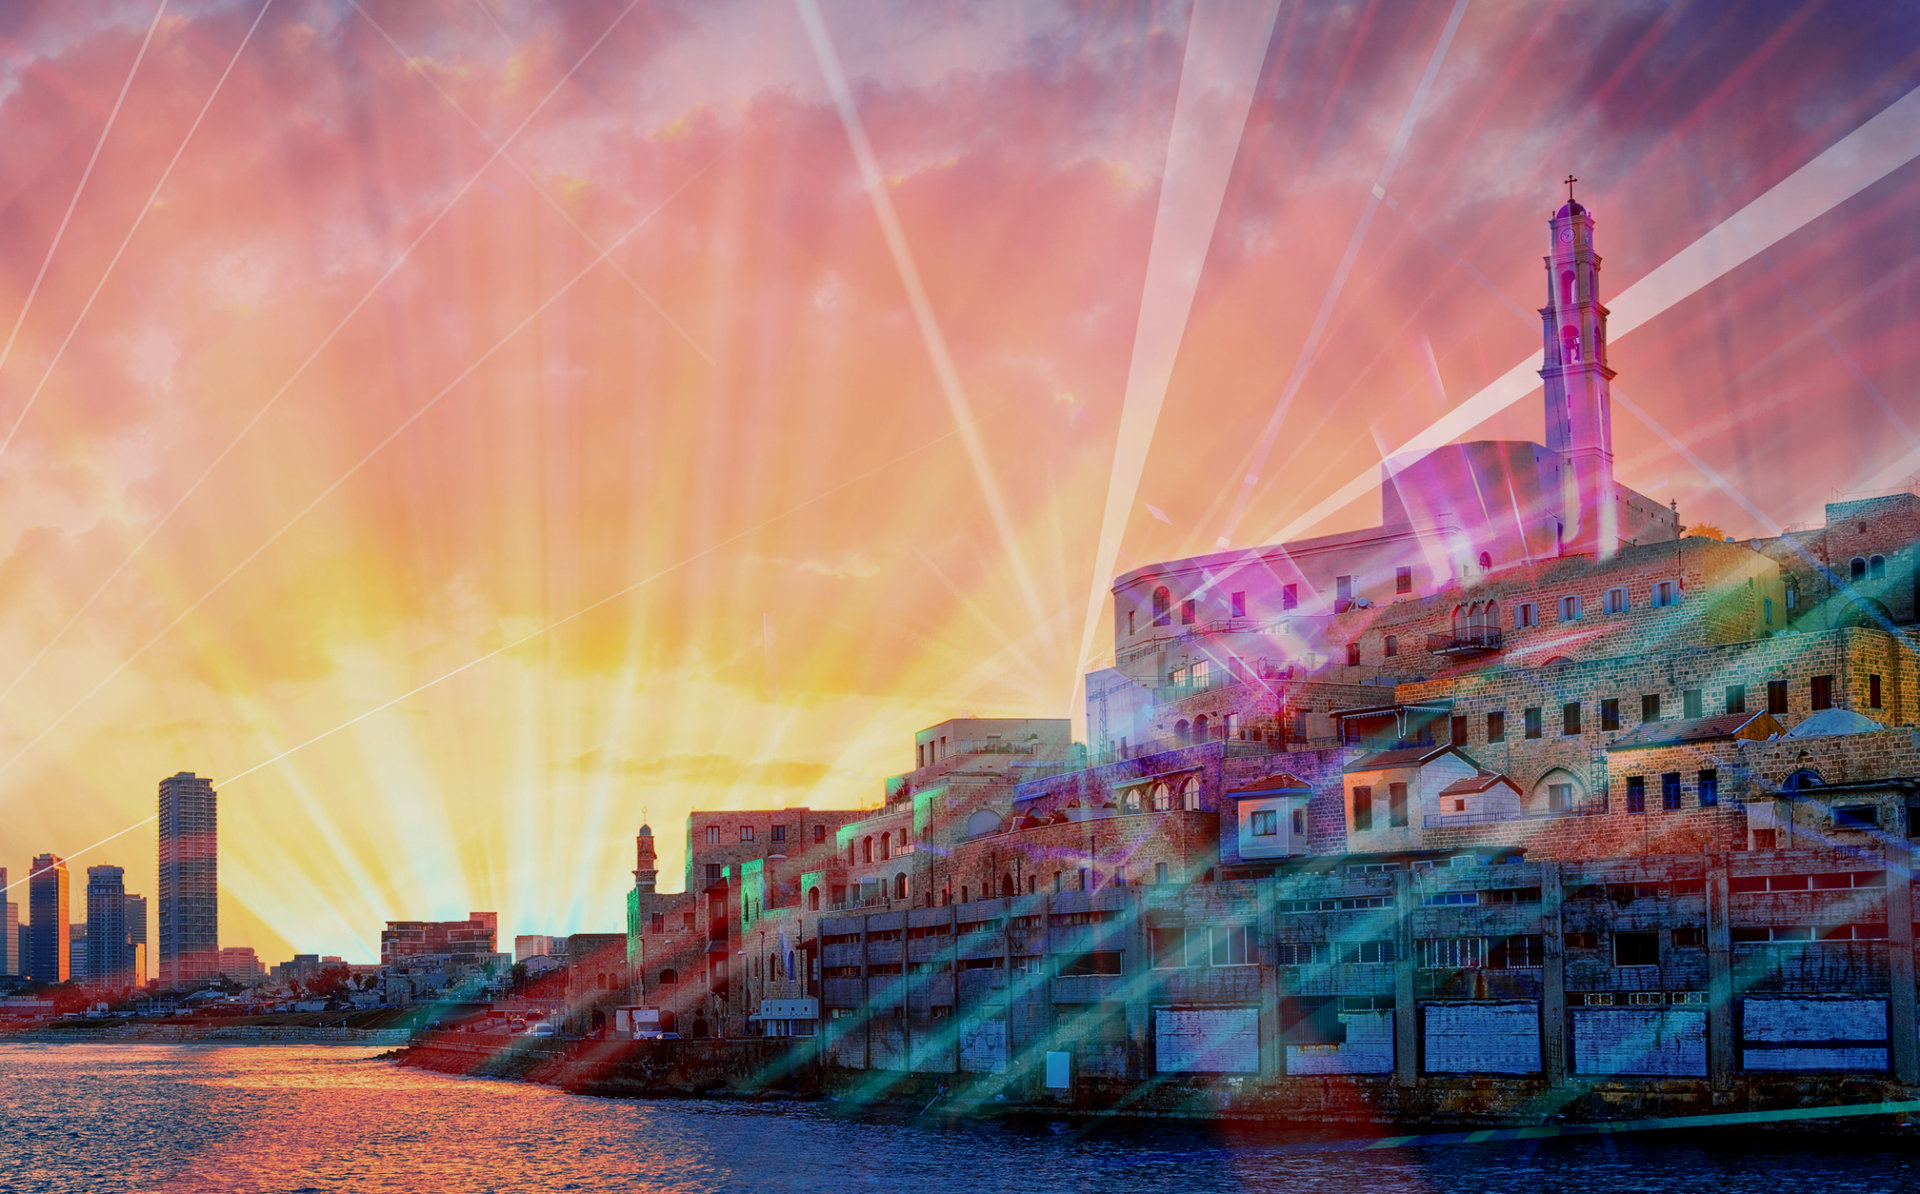 <strong>#FeelTheVibe</strong><br>OSRAM is lighting up the 2019 Eurovision Song Contest in Tel&nbsp;Aviv